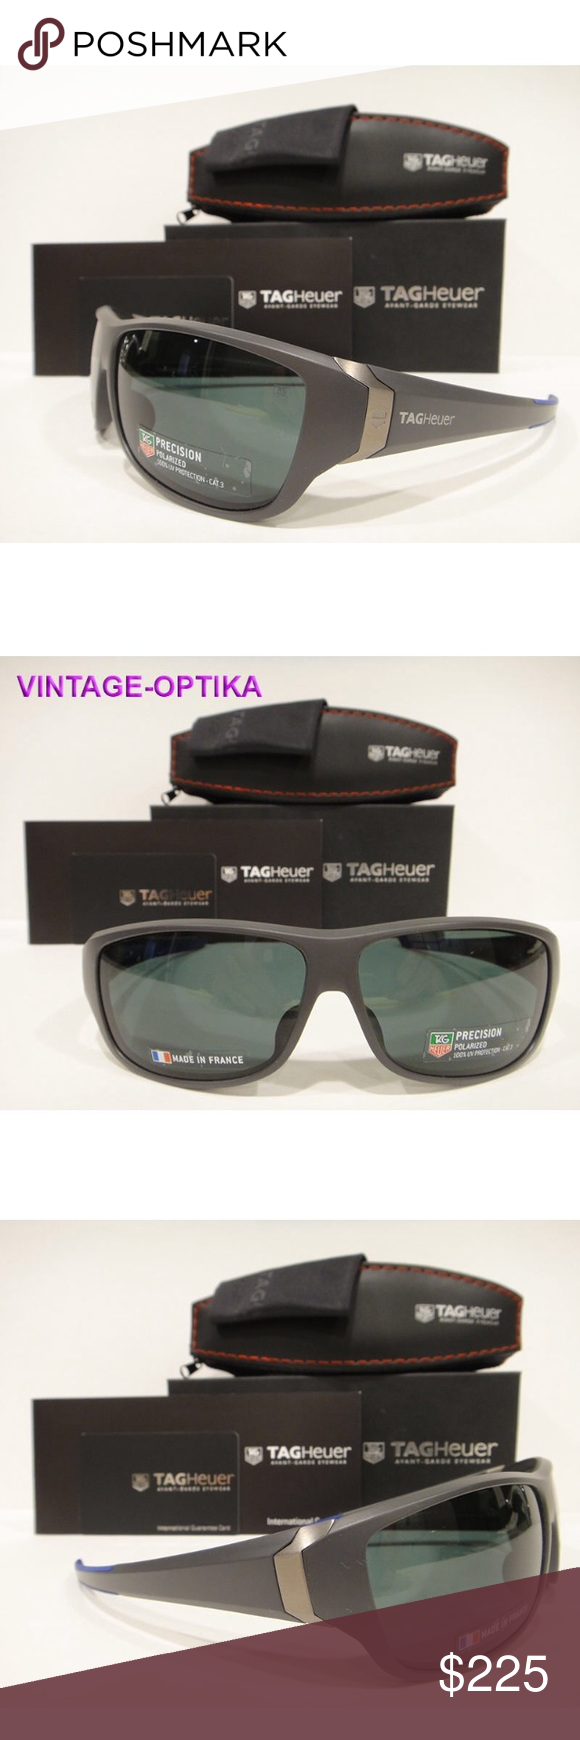 eb14297985 Tag Heuer 9225 Racer 2 Sunglasses Cobalt Polarized These are 100% Genuine